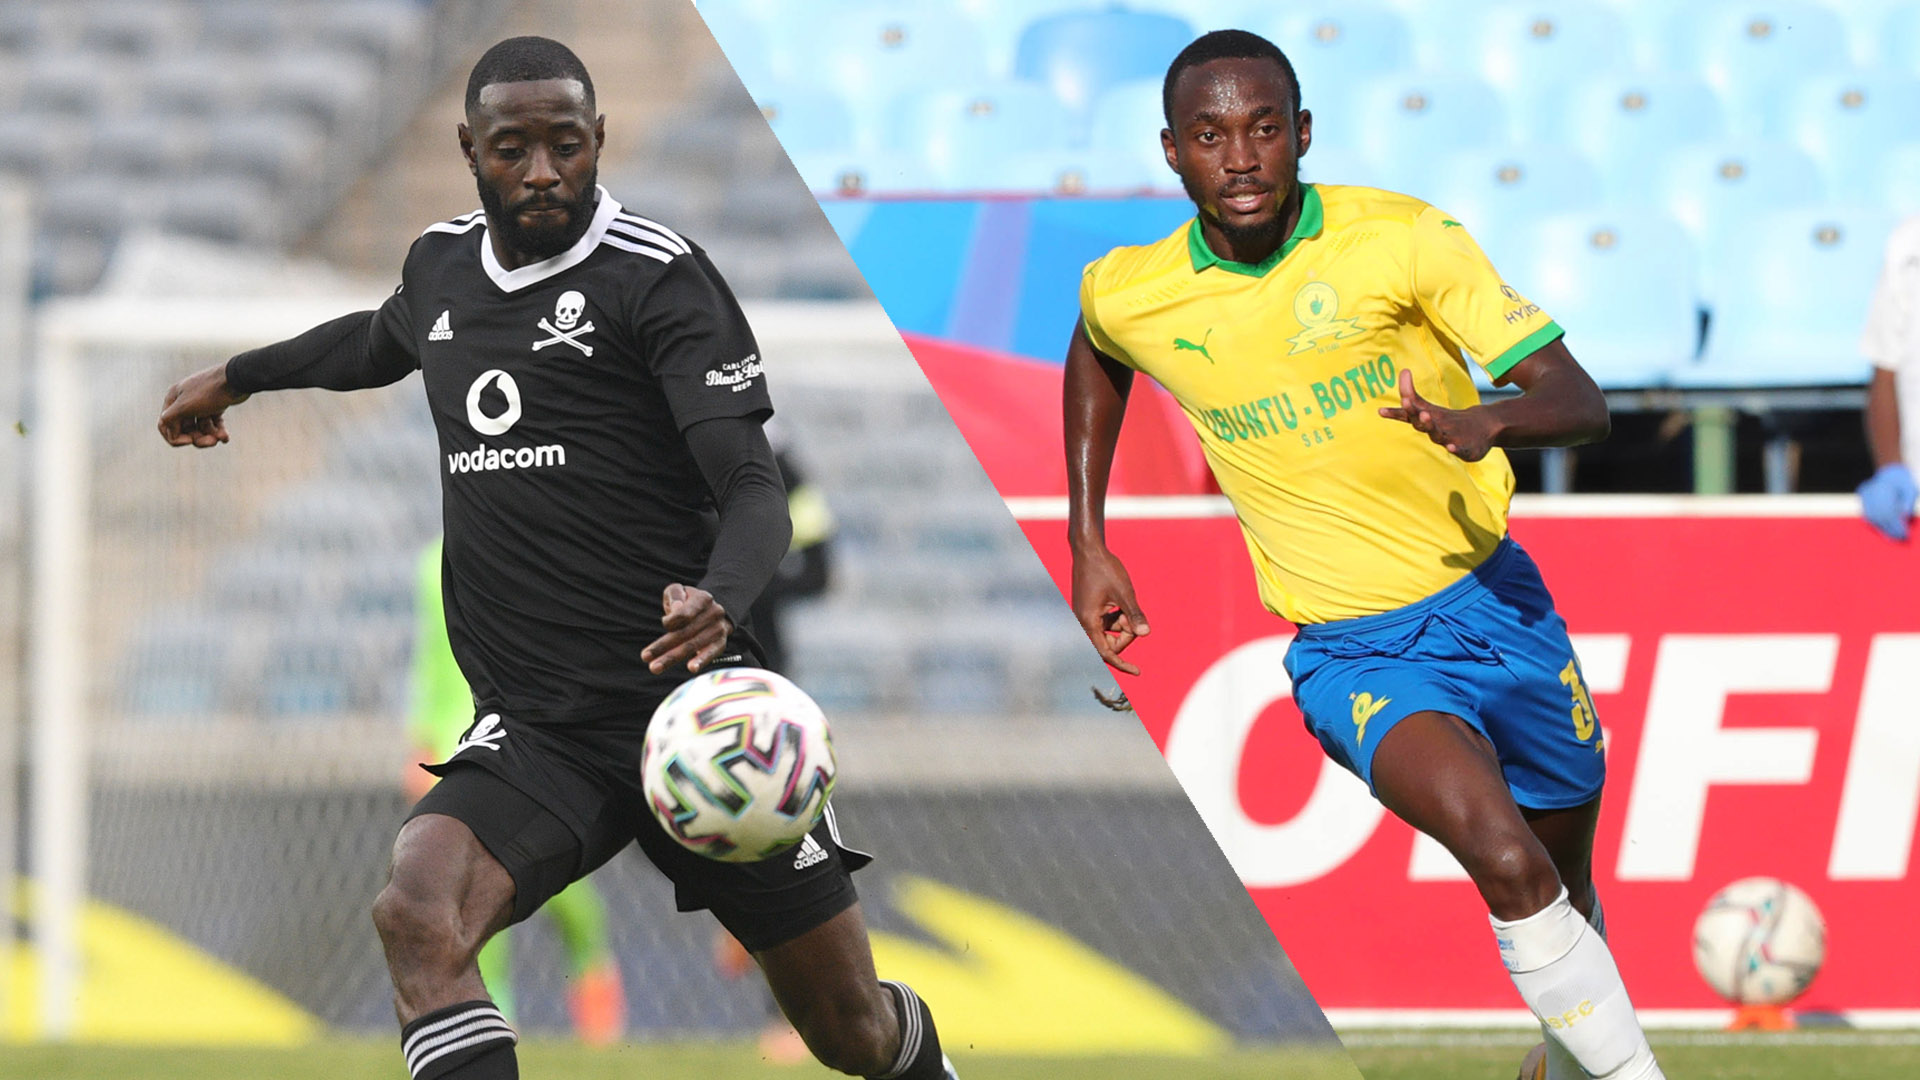 Mamelodi Sundowns trio and Orlando Pirates star Hotto scoop PSL monthly accolades